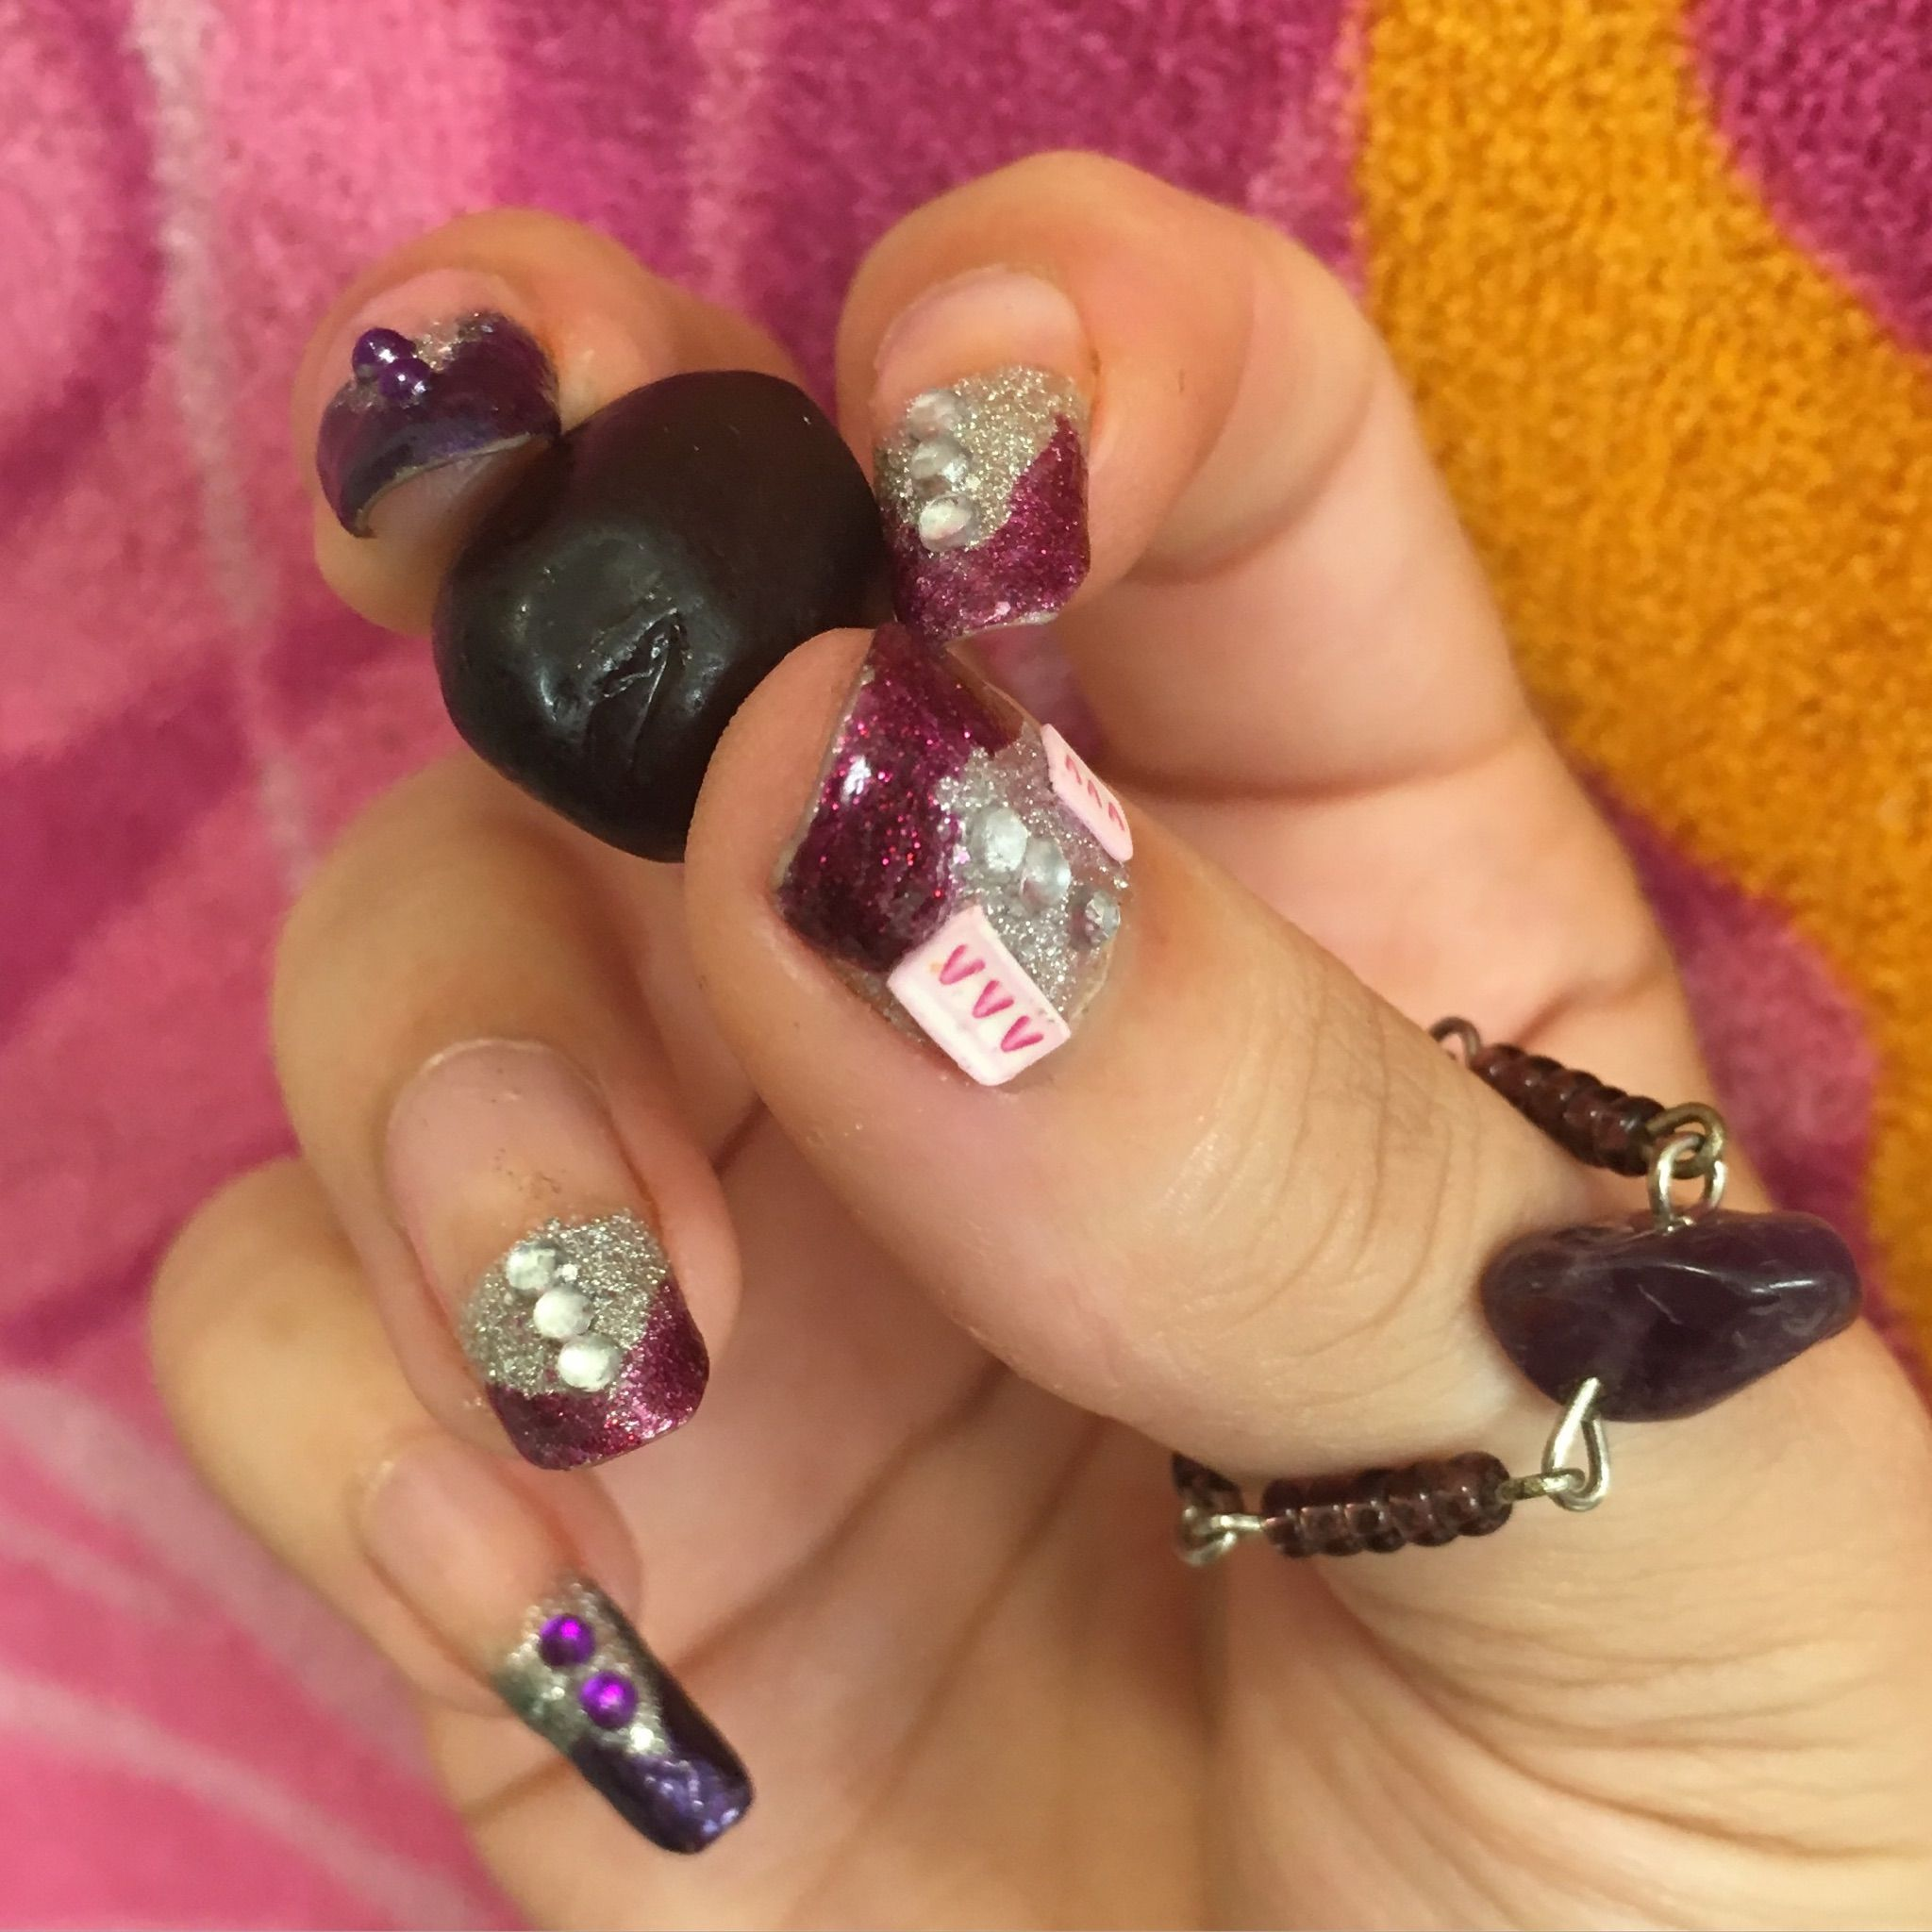 Sparkly fun French nails by MaxAna X | MaxAna X nails | Pinterest ...